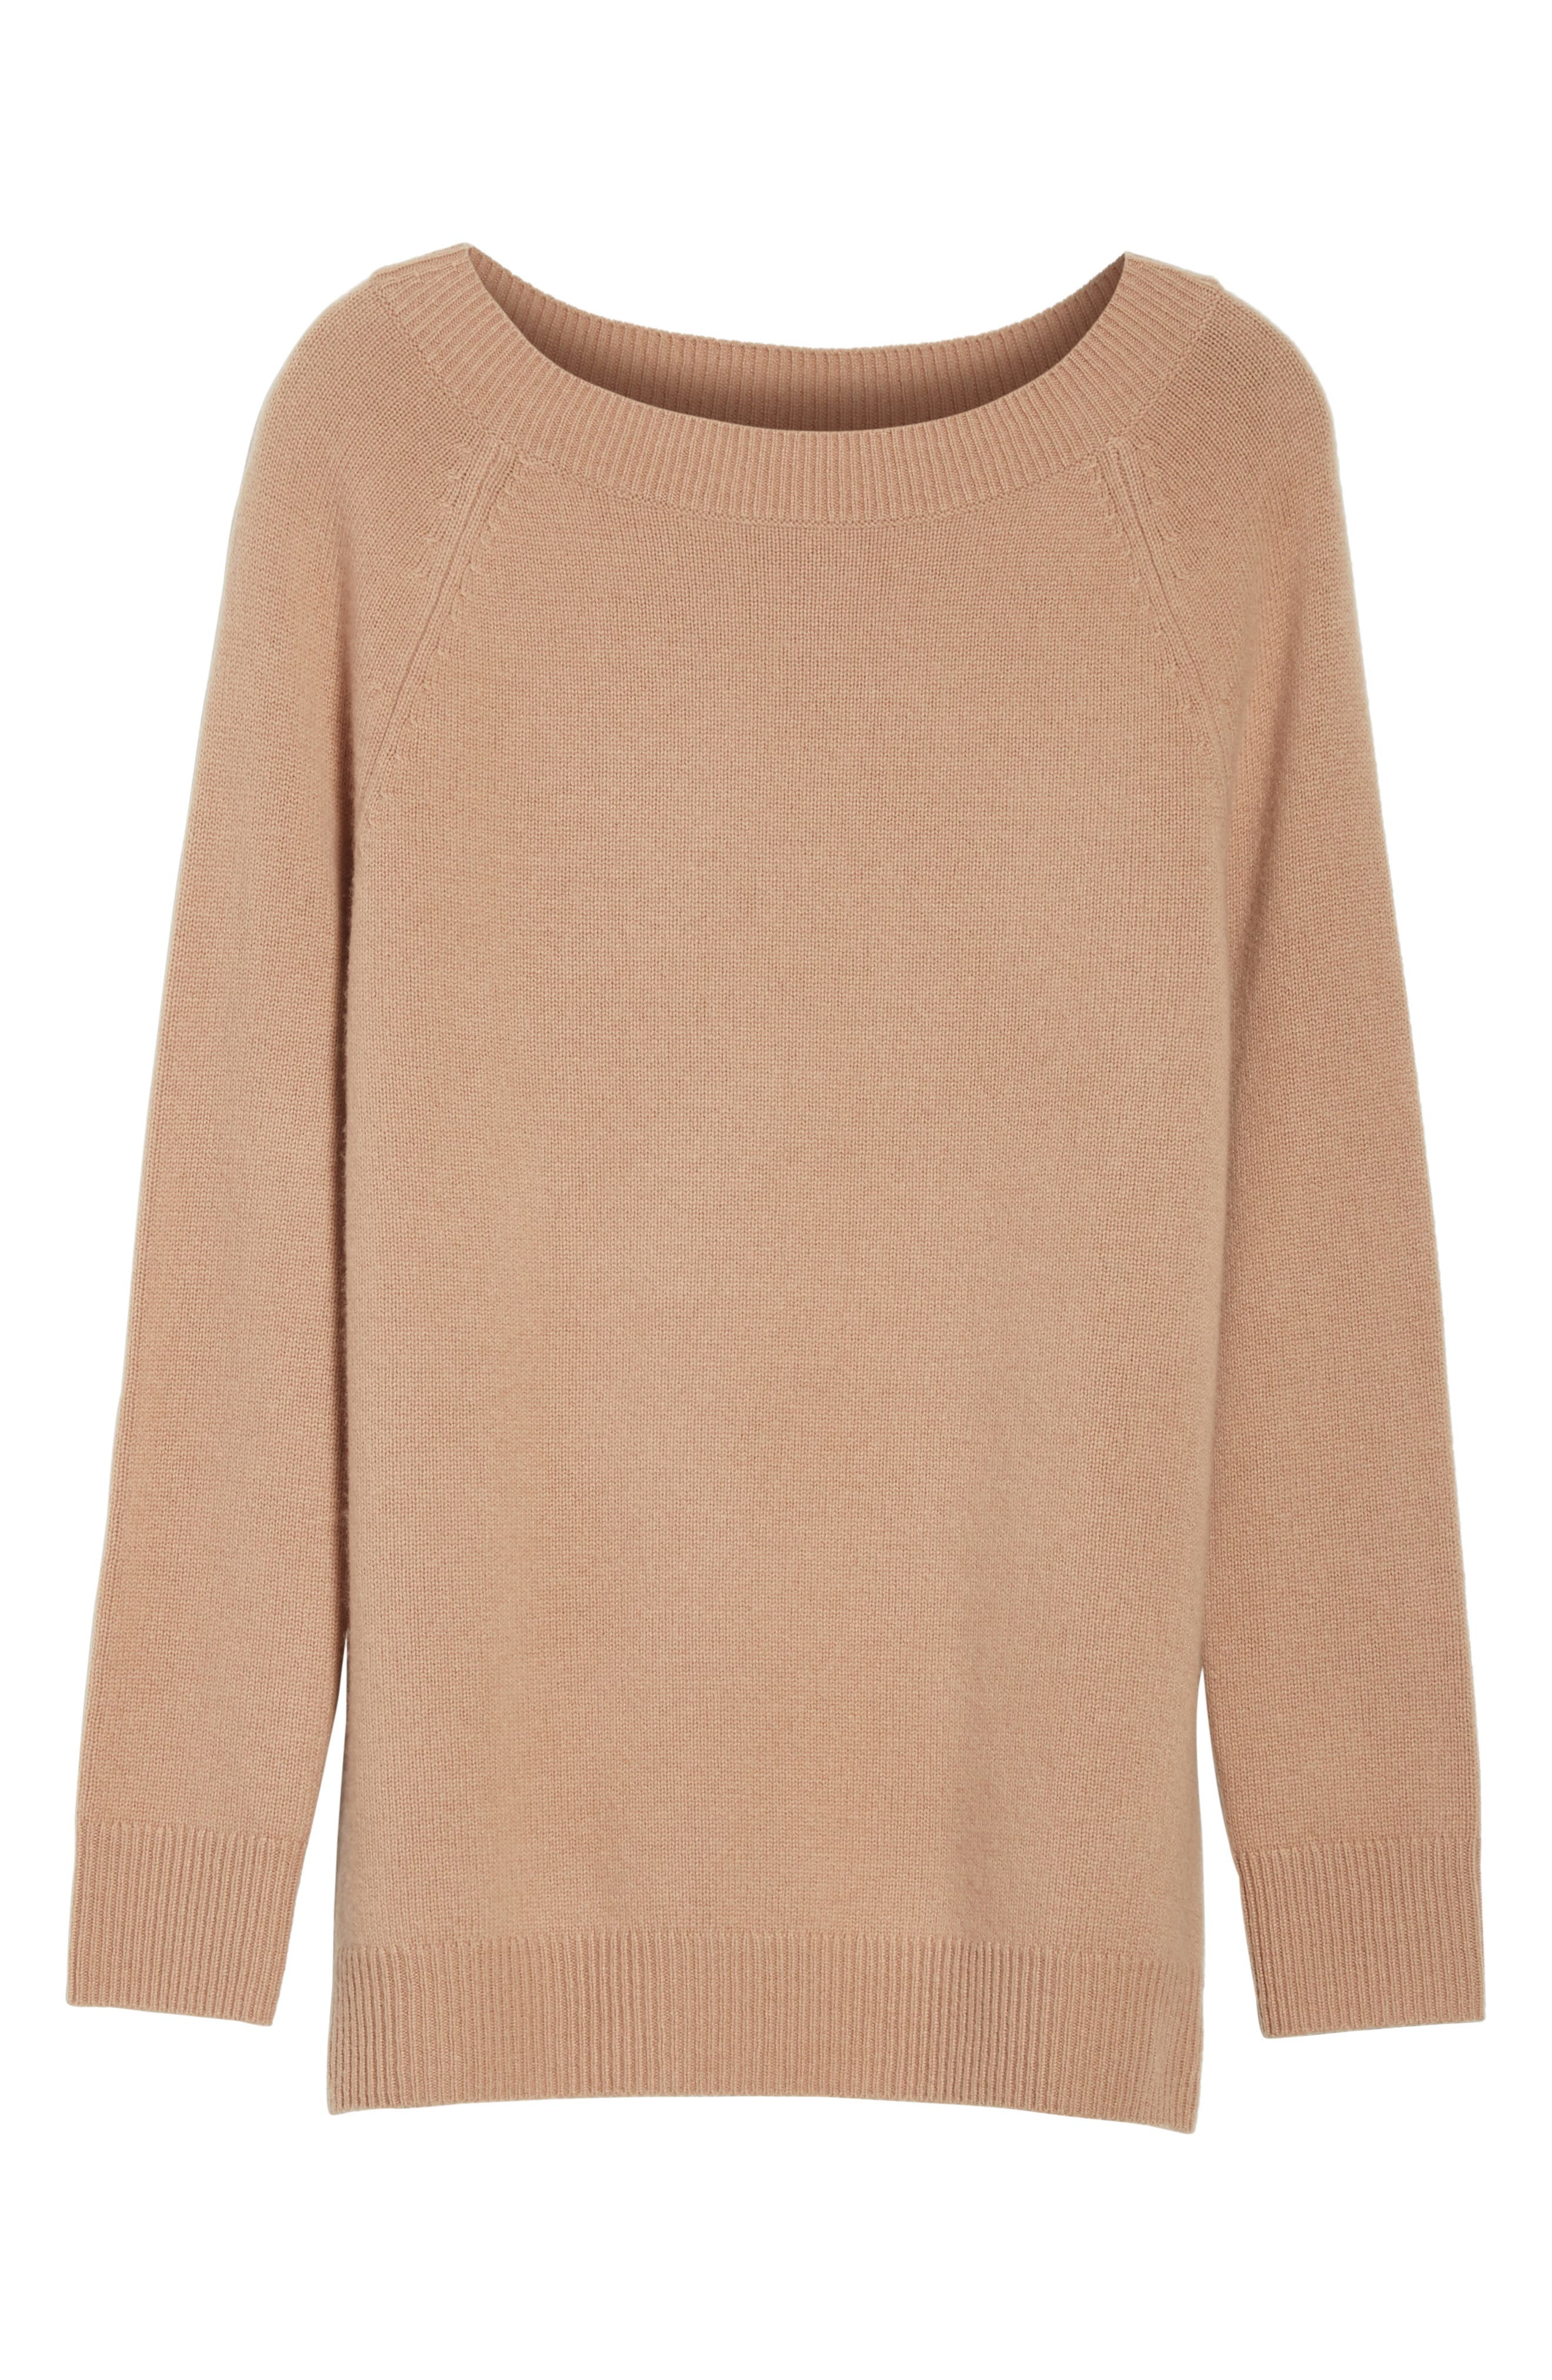 Cody Wool & Cashmere Boatneck Sweater,                             Alternate thumbnail 6, color,                             200